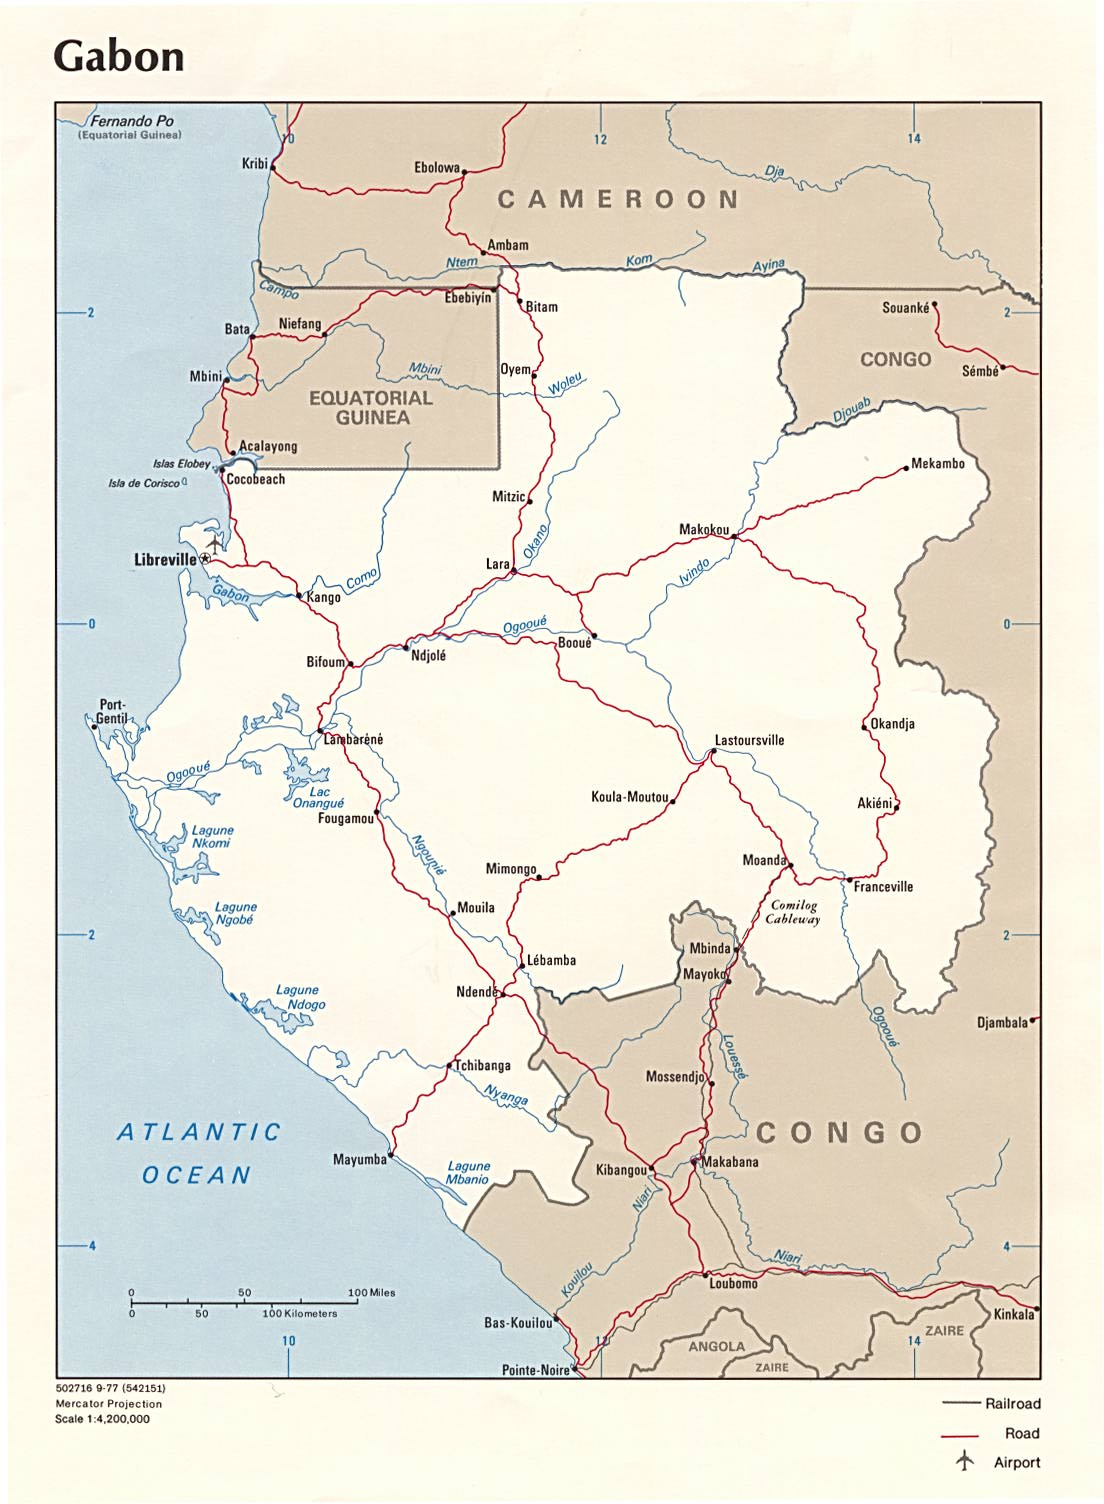 Maps Of Gabon - Where is gabon on the world map